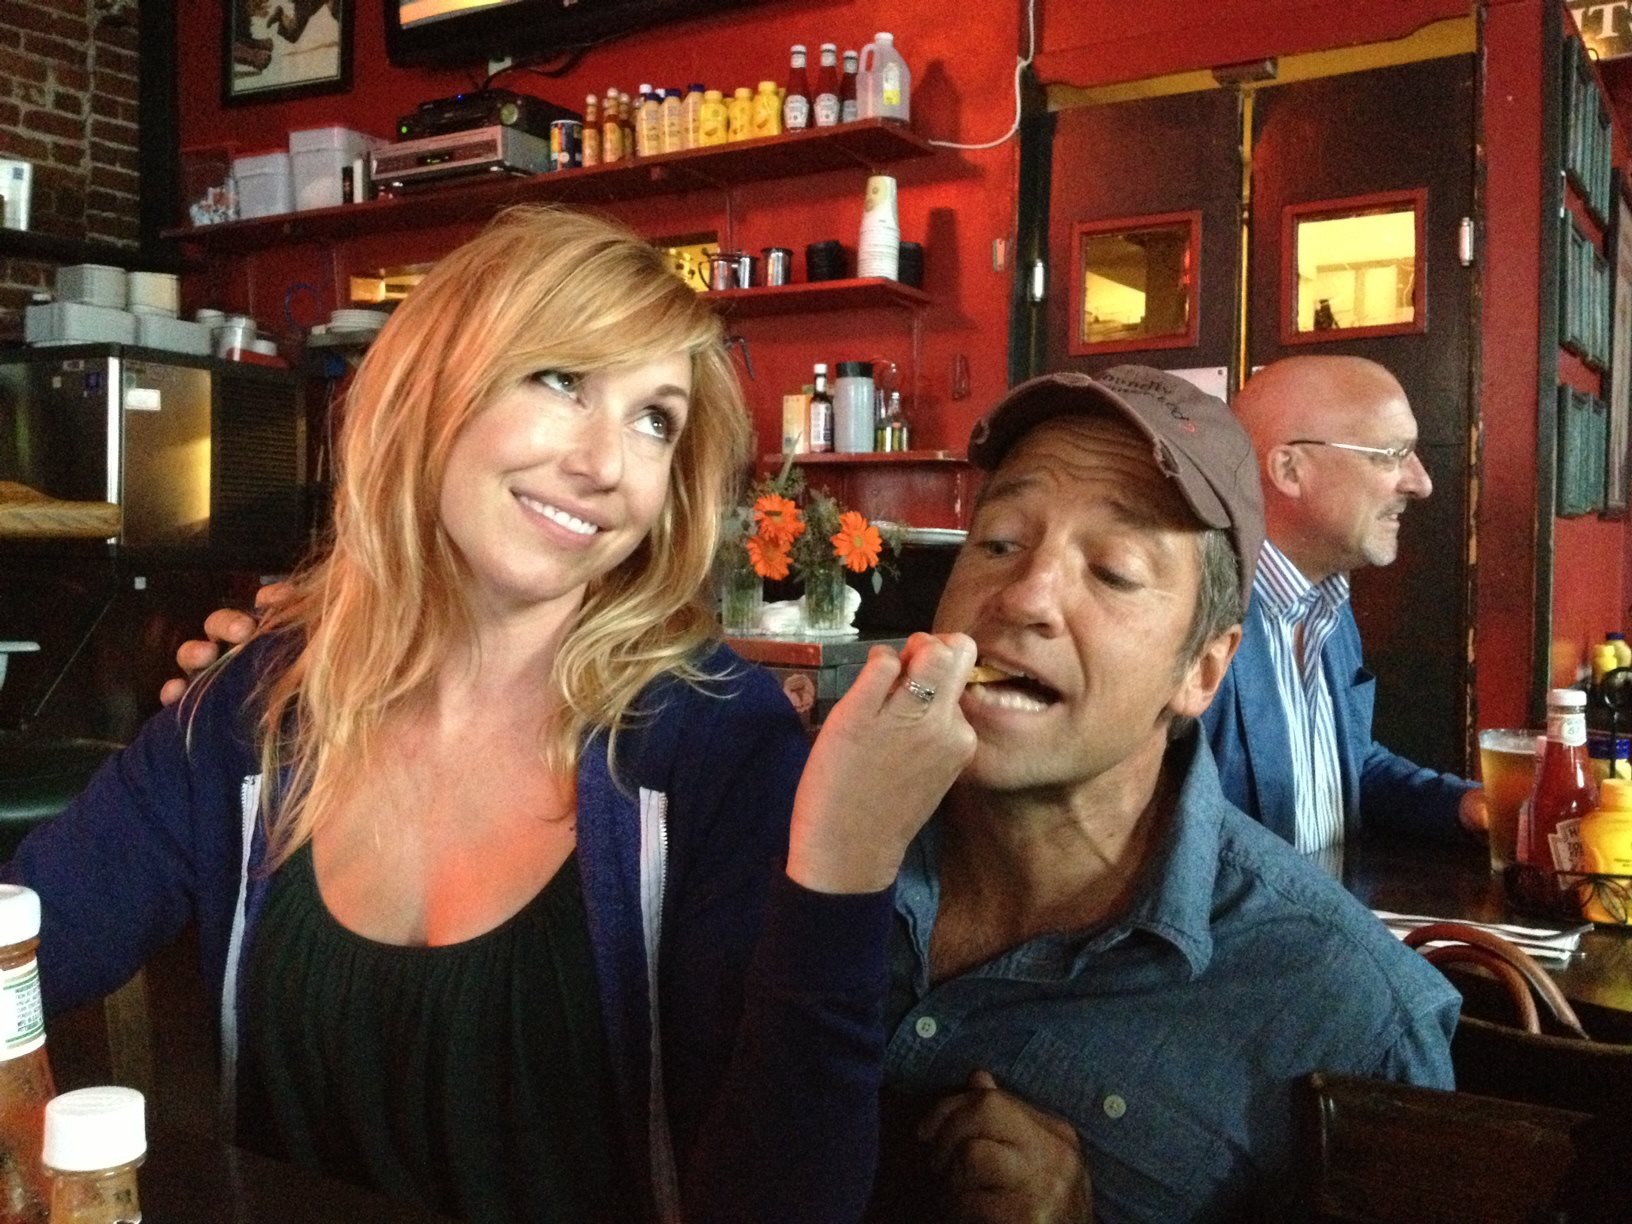 Sometimes, Kari Byron from MythBusters feeds me french fries. I don't mind. - Mike Rowe